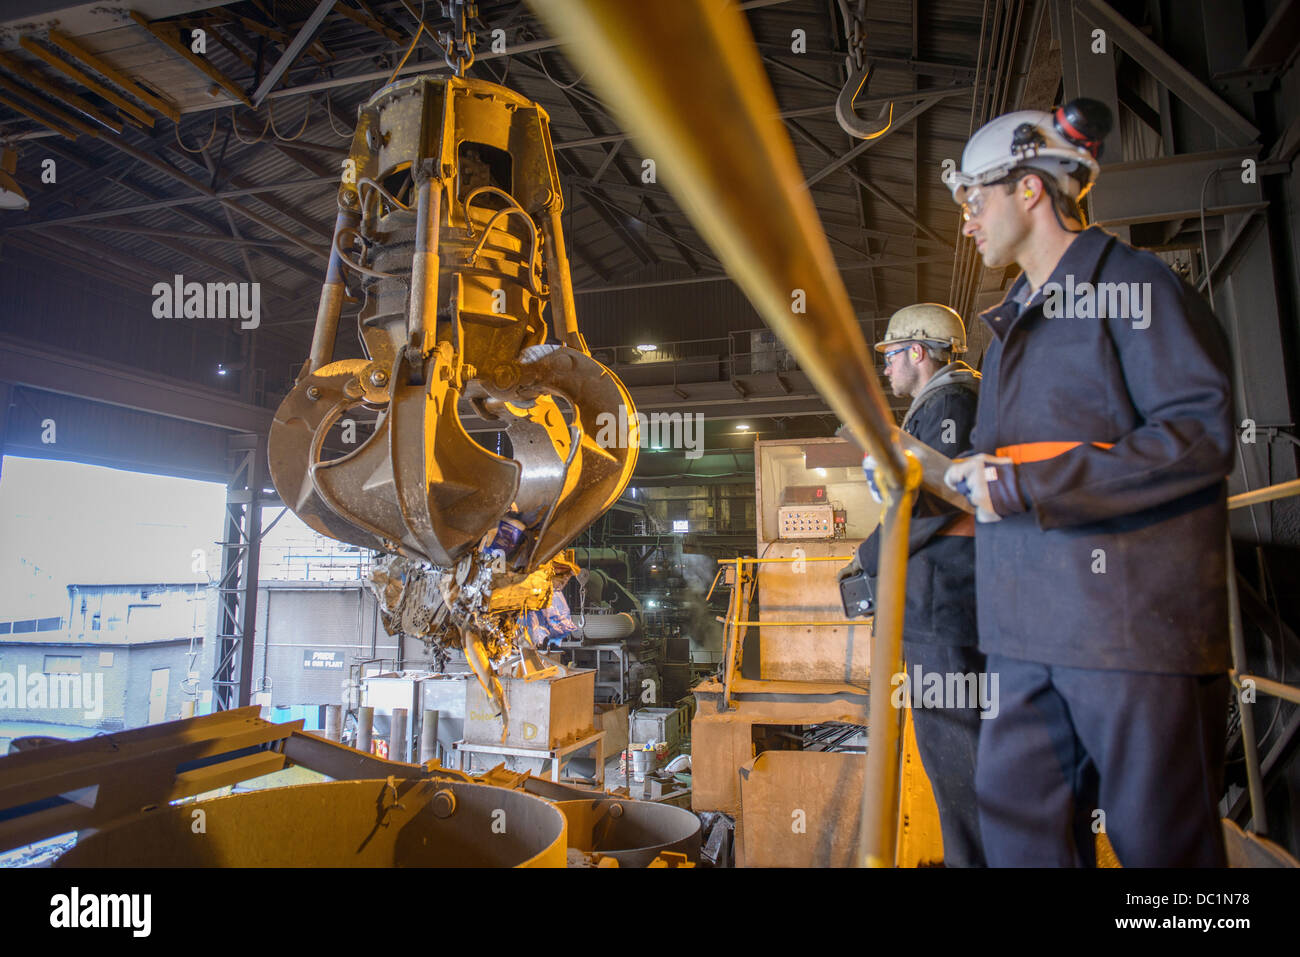 Workers watching mechanical grabber in steel foundry - Stock Image